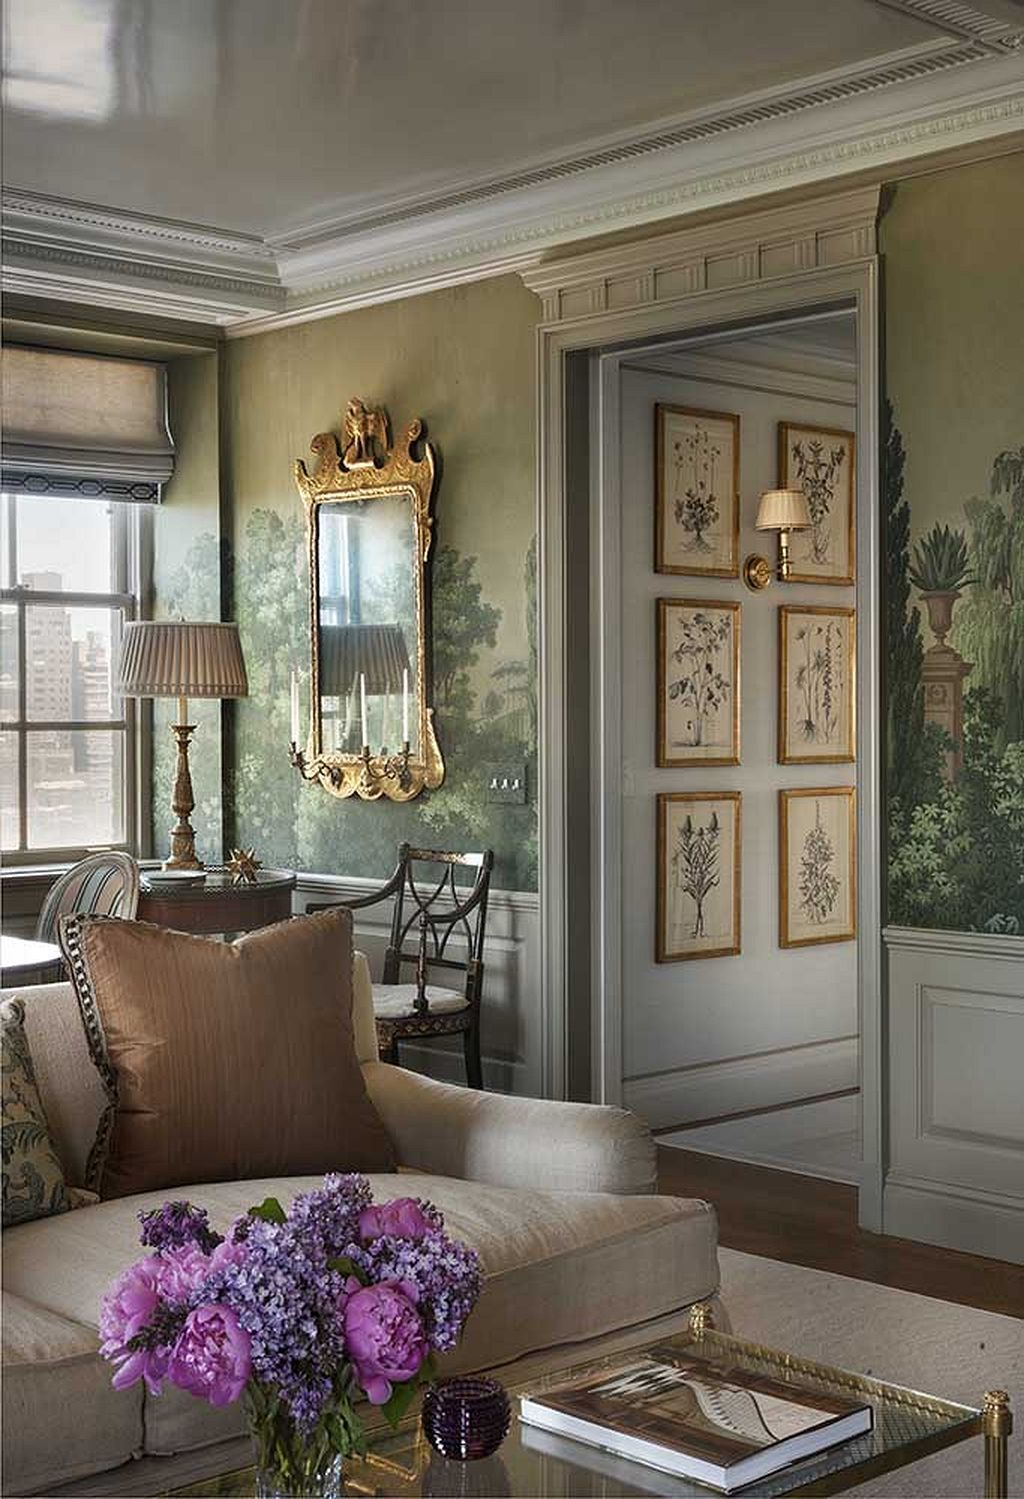 18 Images of English Country Home Decor Ideas – Decor Inspiration.